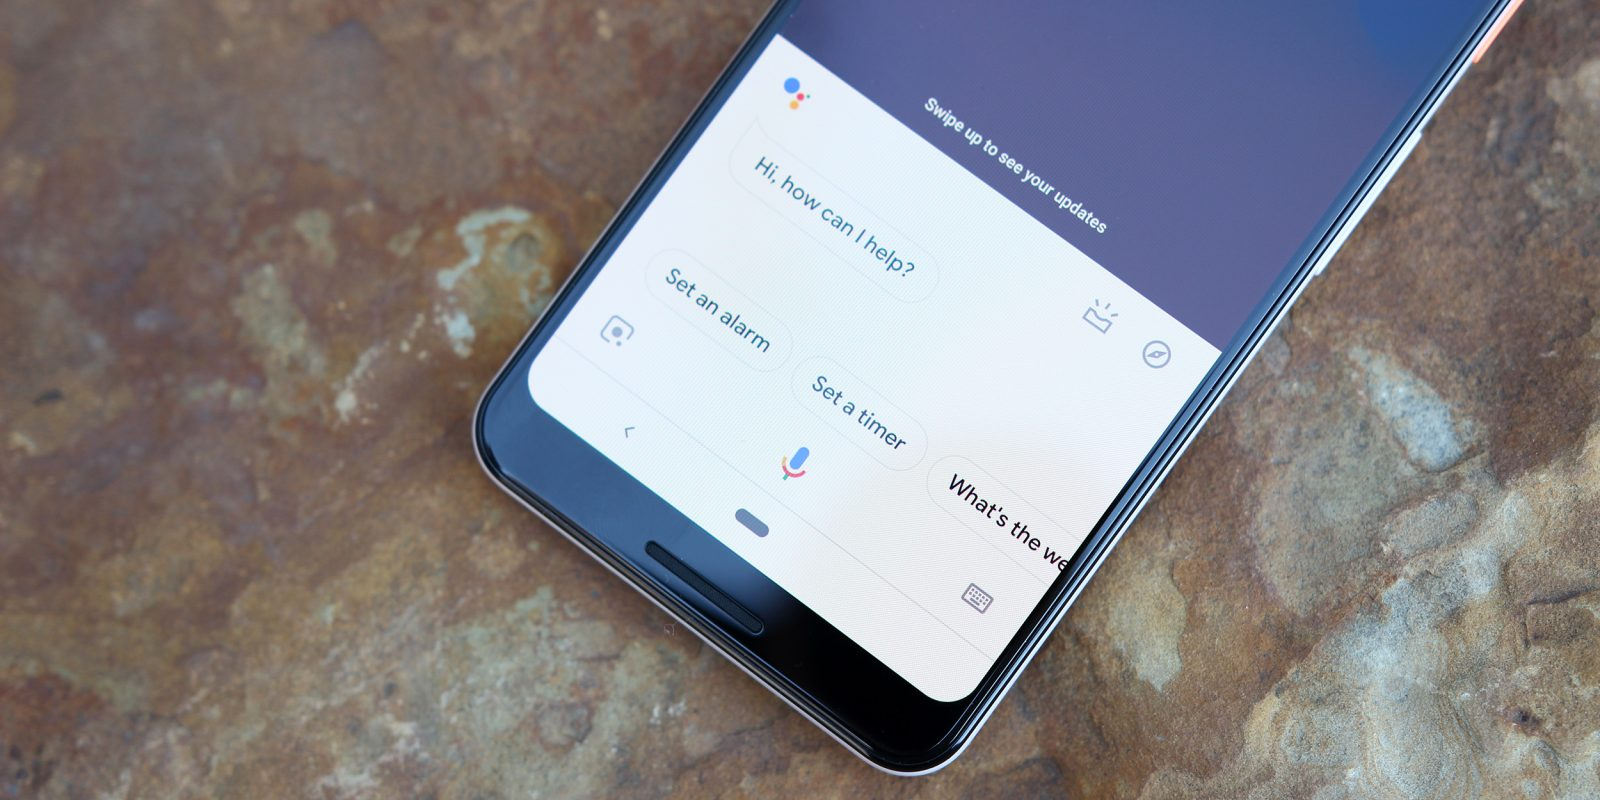 Google Planning to discontinue Voice Unlock feature on Android